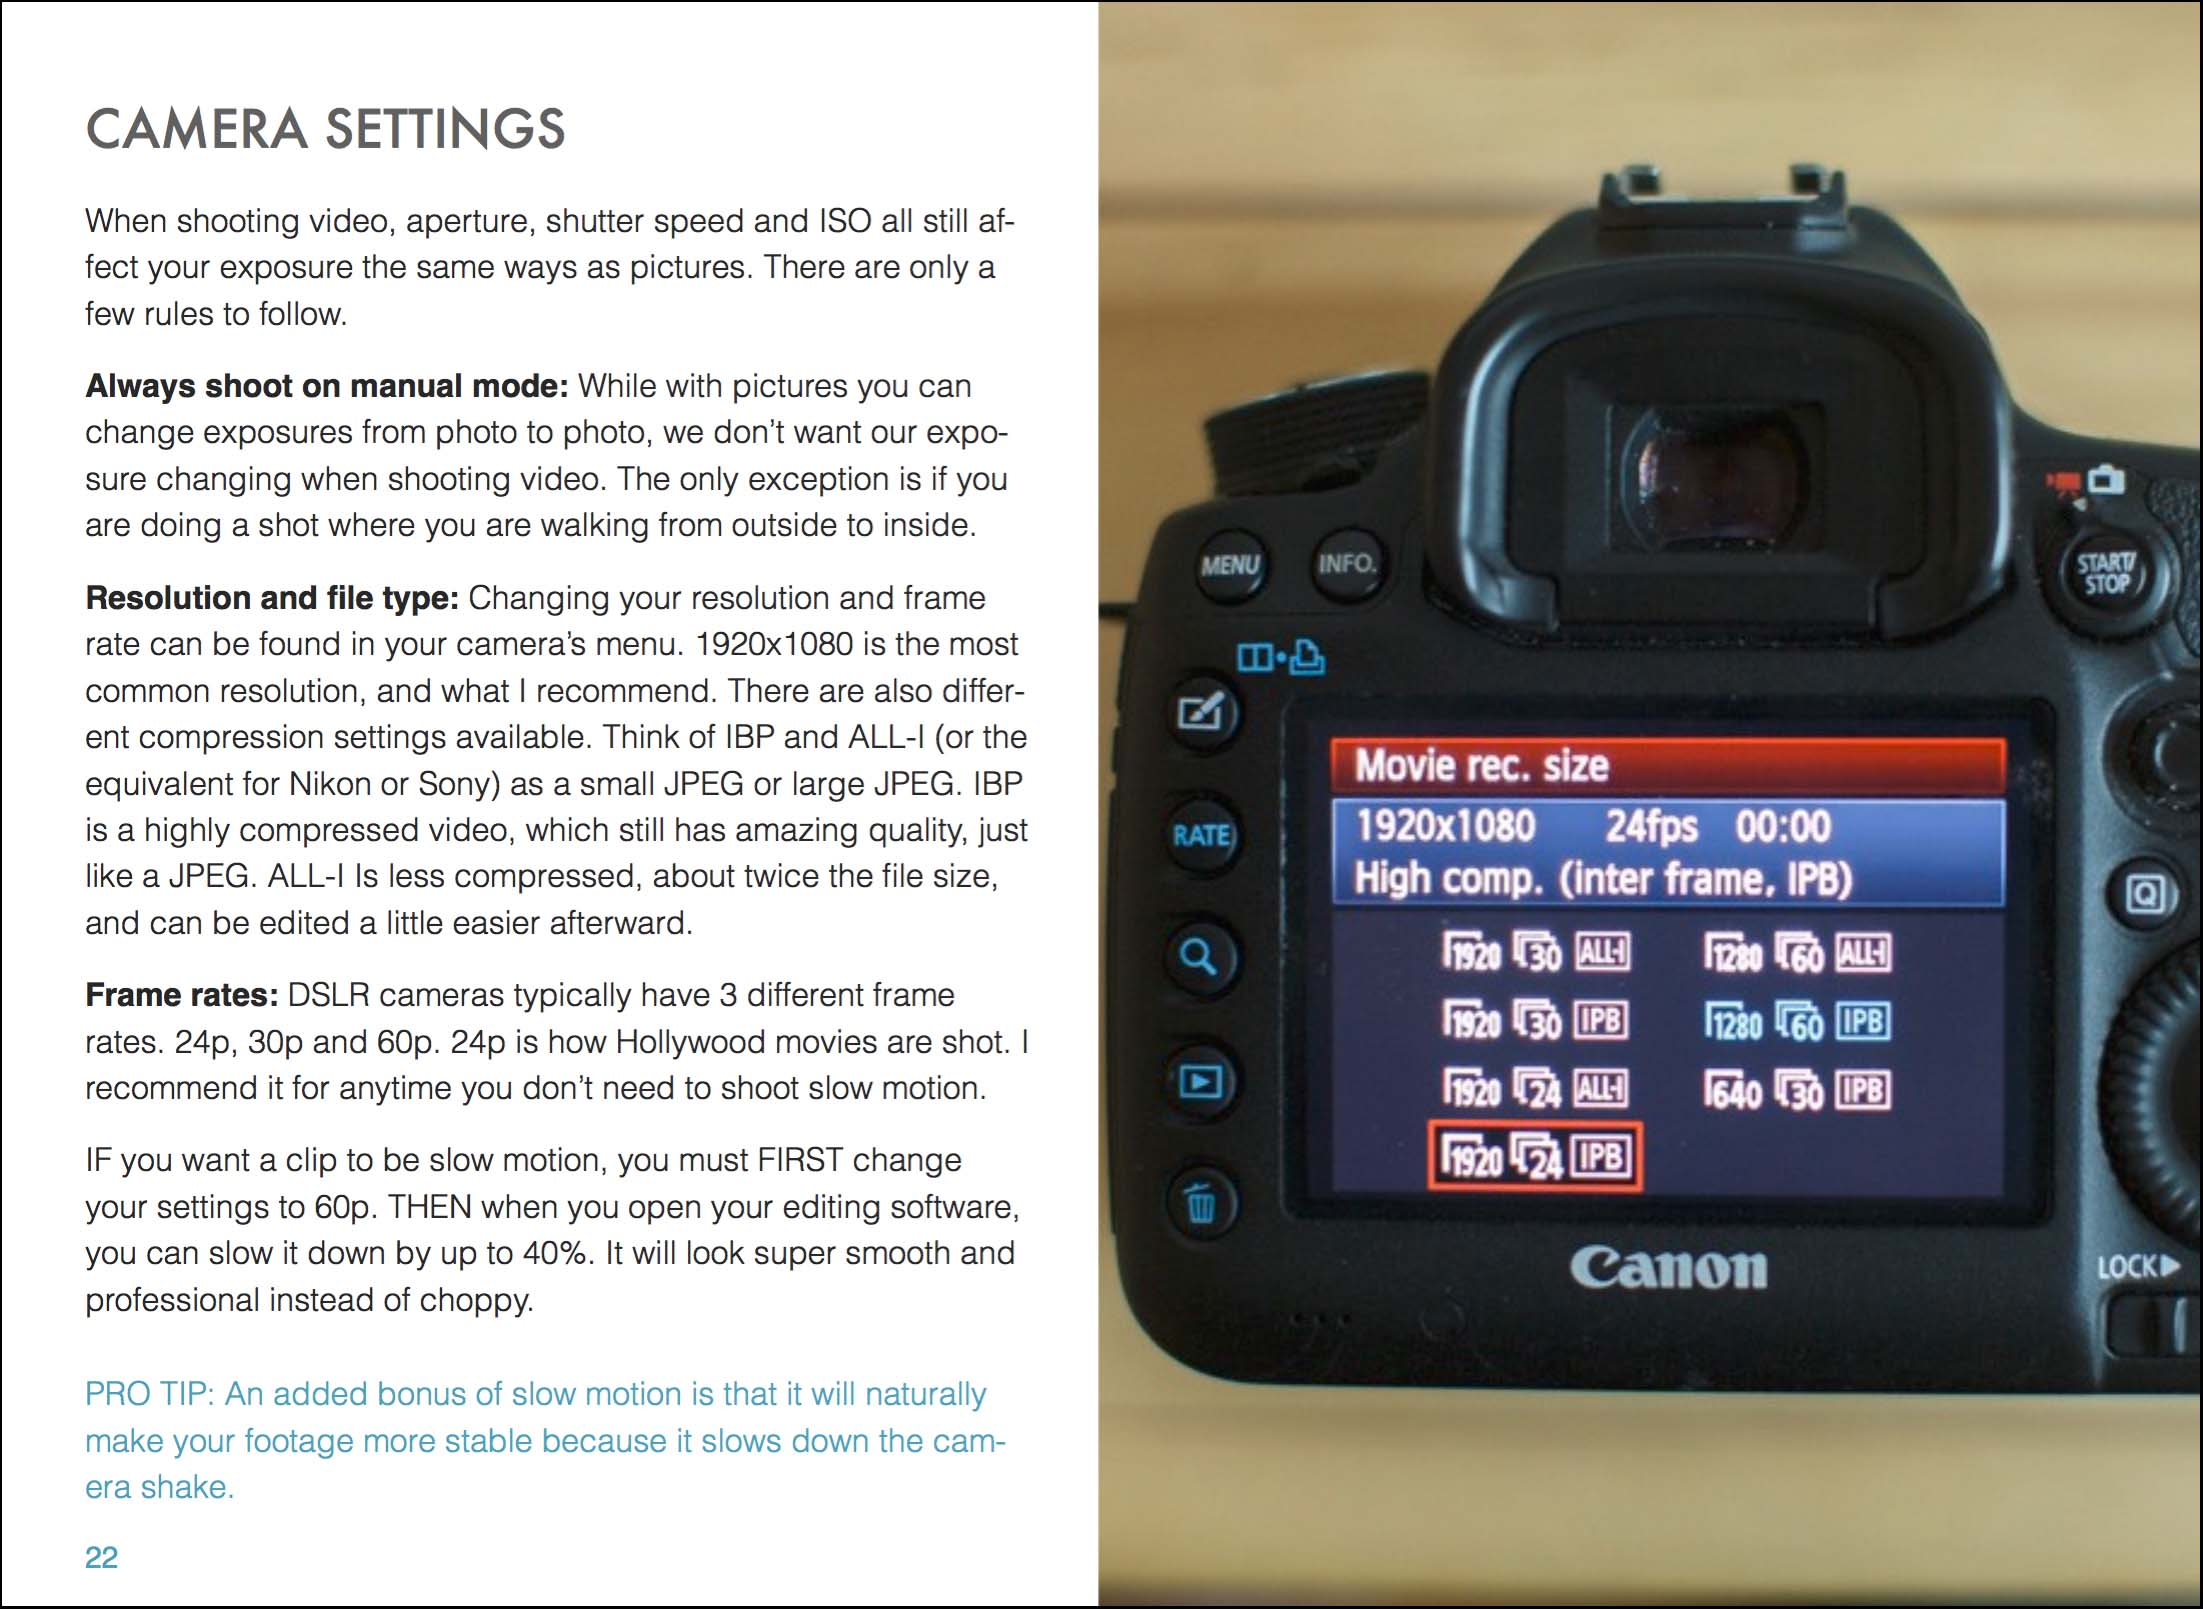 Camera settings for filming boudoir photoshoots